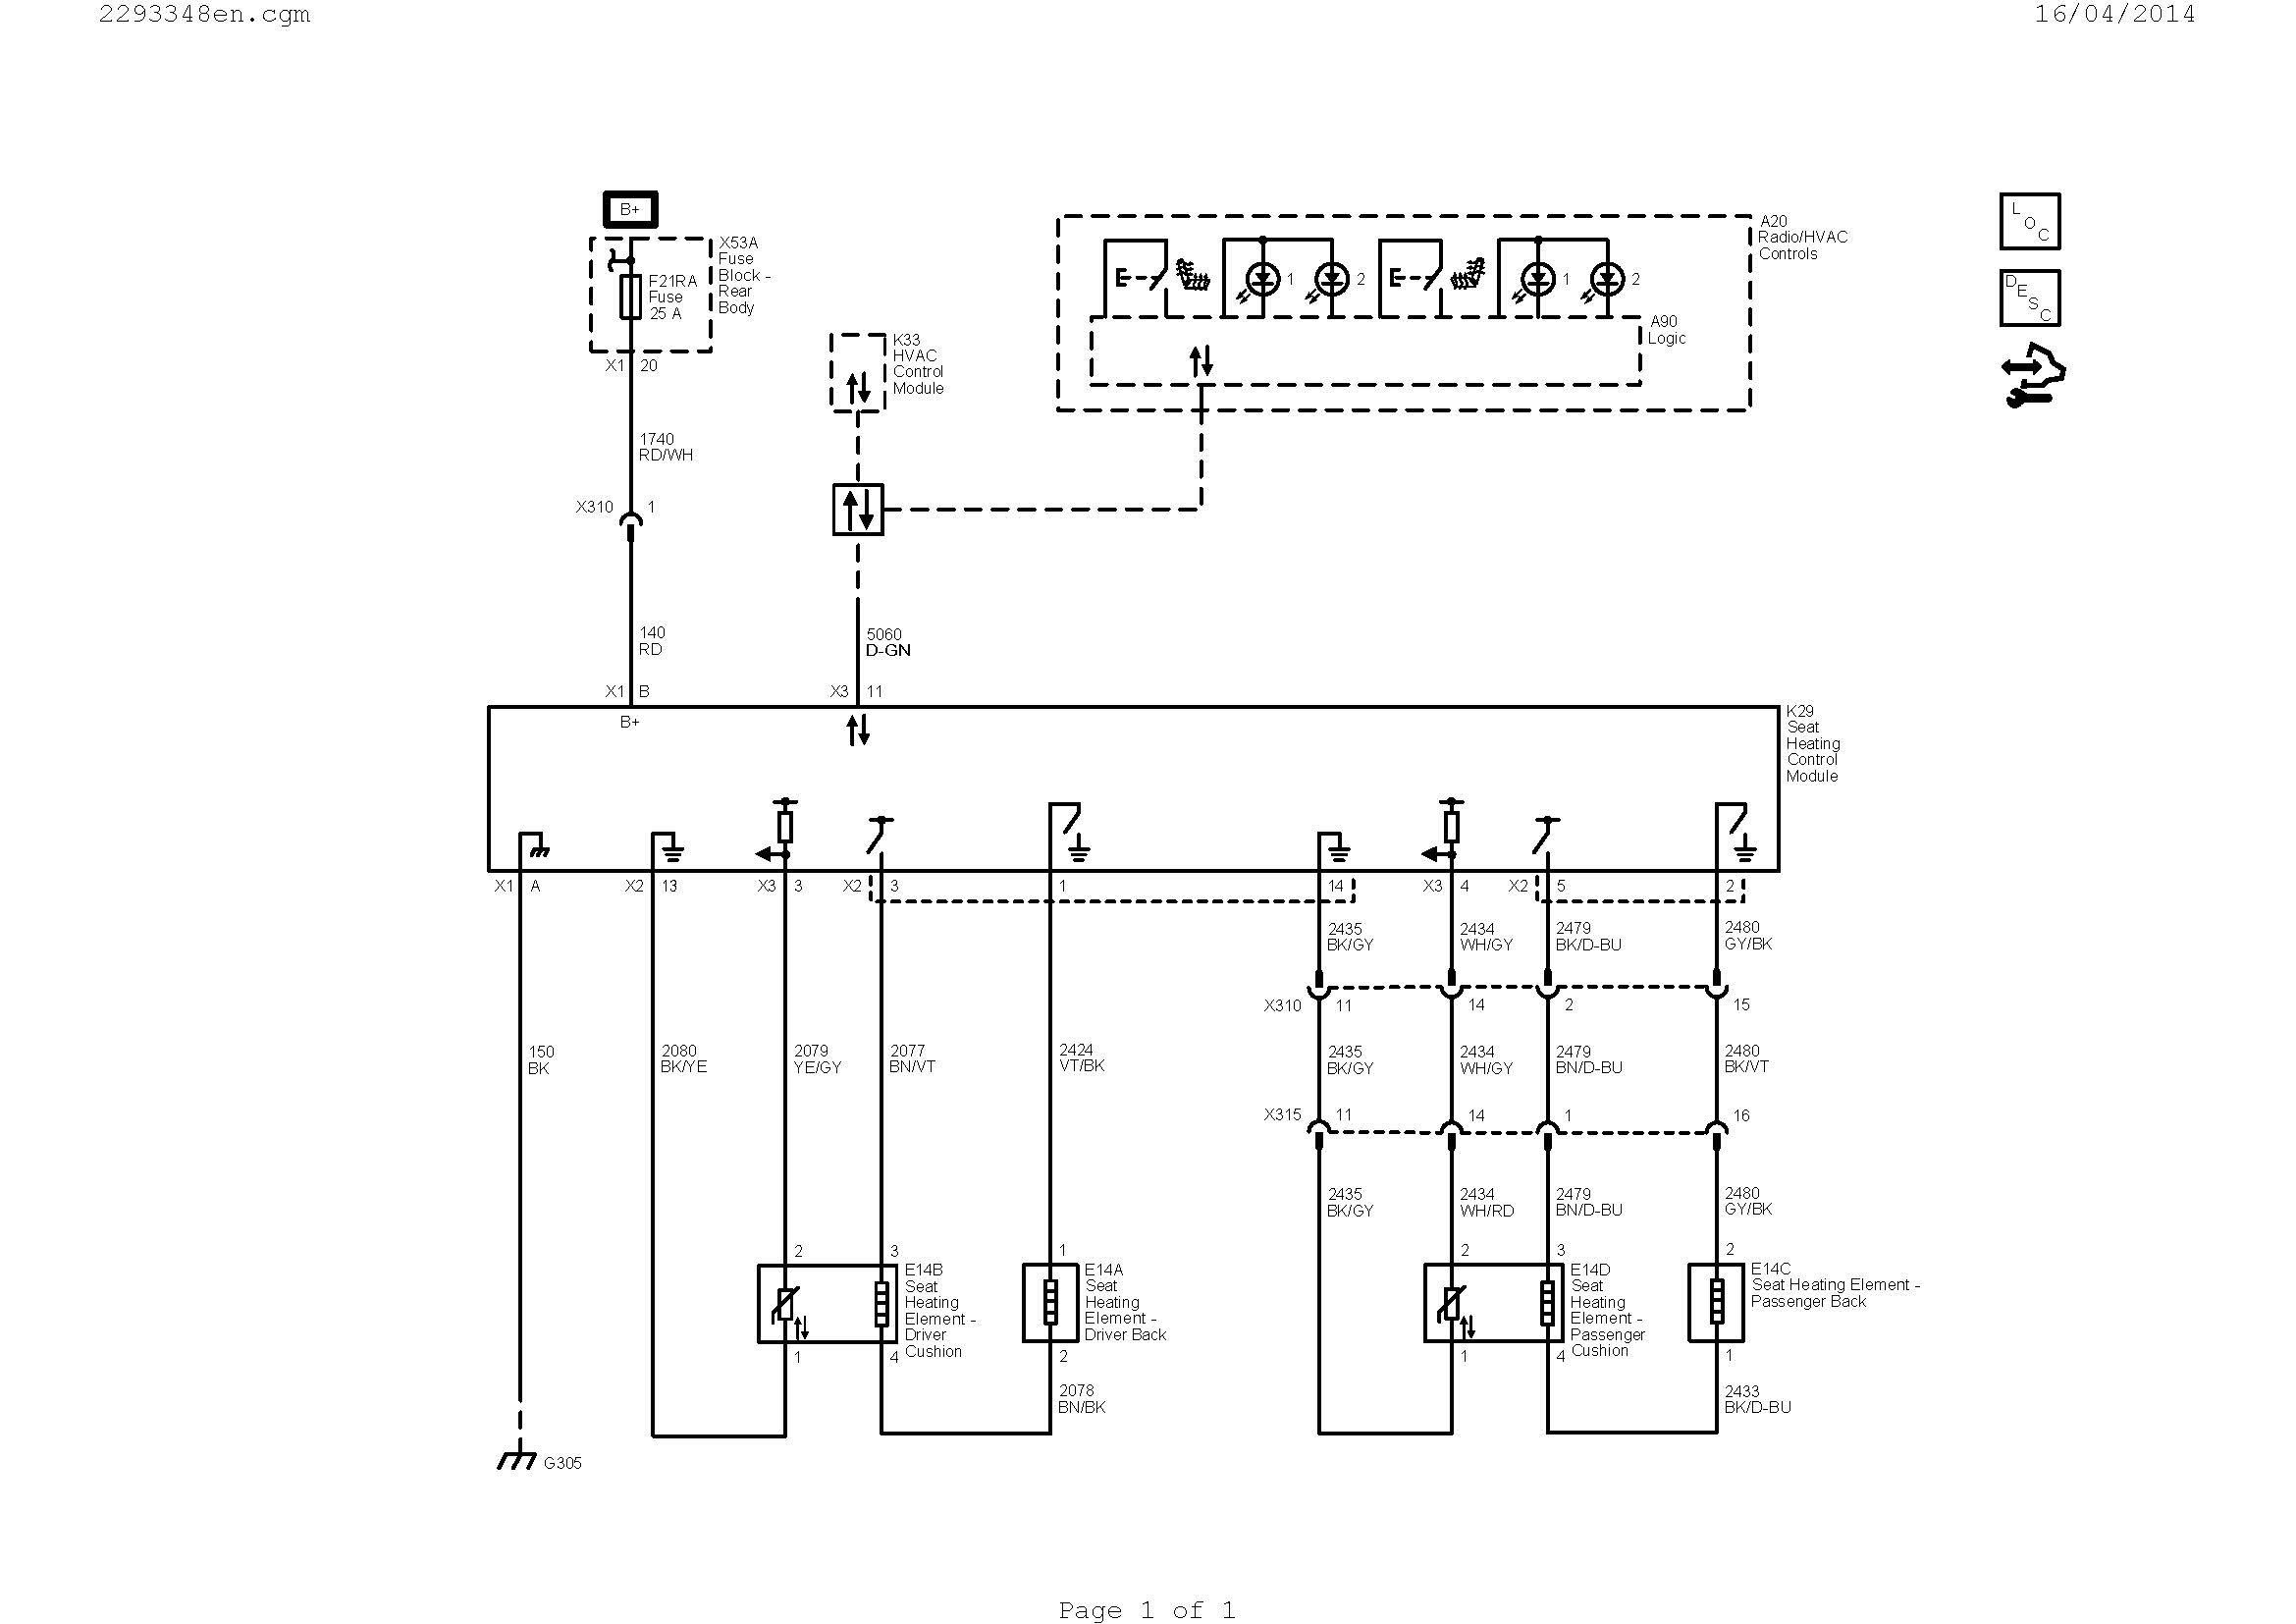 lithonia emergency light wiring diagram Download-headphone wiring diagram Download understanding hvac wiring diagrams Download Diagram Websites Unique Hvac Diagram 0d DOWNLOAD Wiring Diagram 4-e